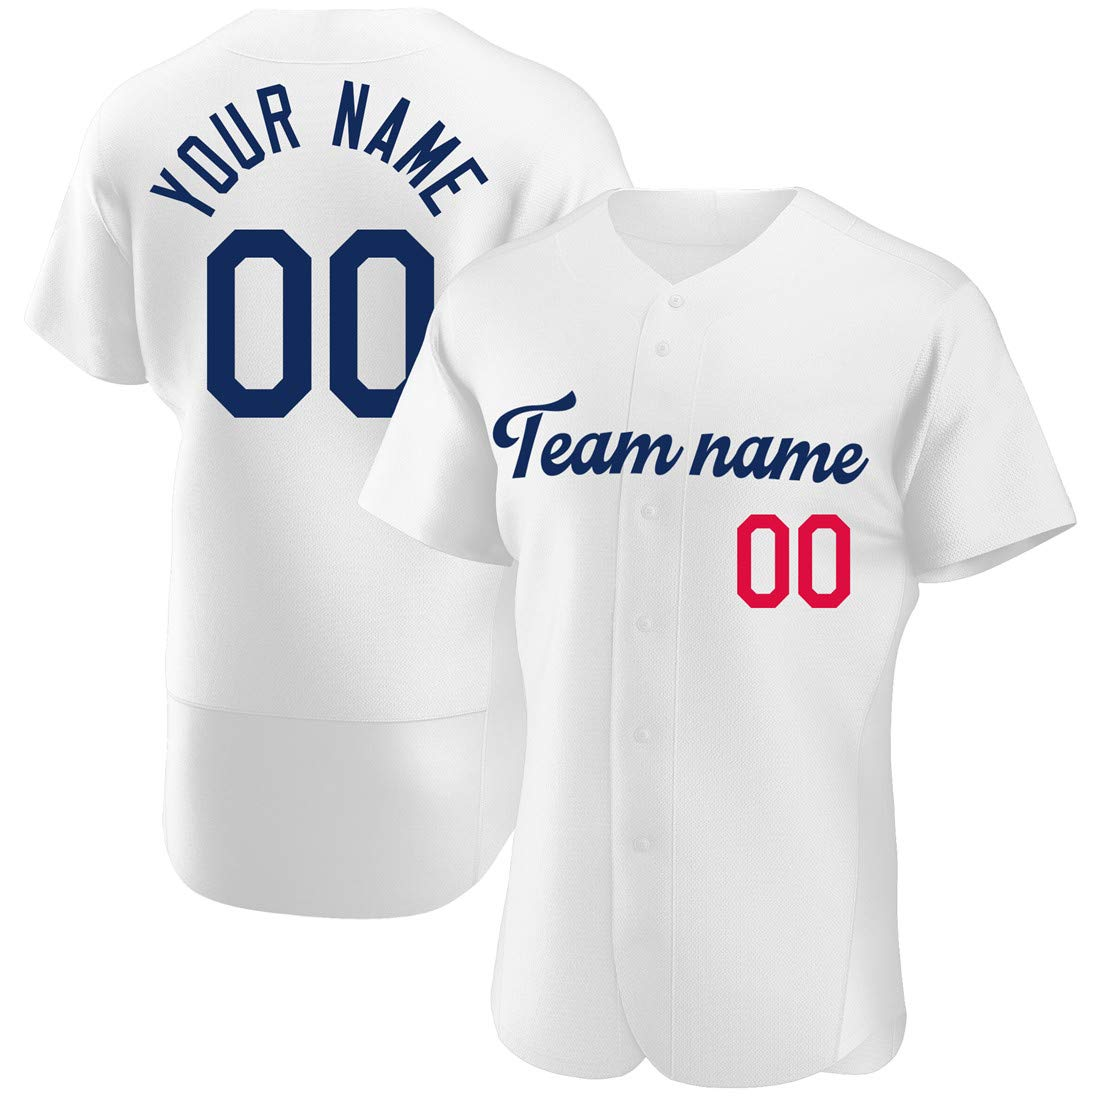 Custom Boys/Girls Baseball Jerseys Small Button Down,Design Team/Player/Family Sport Shirts Embroidery